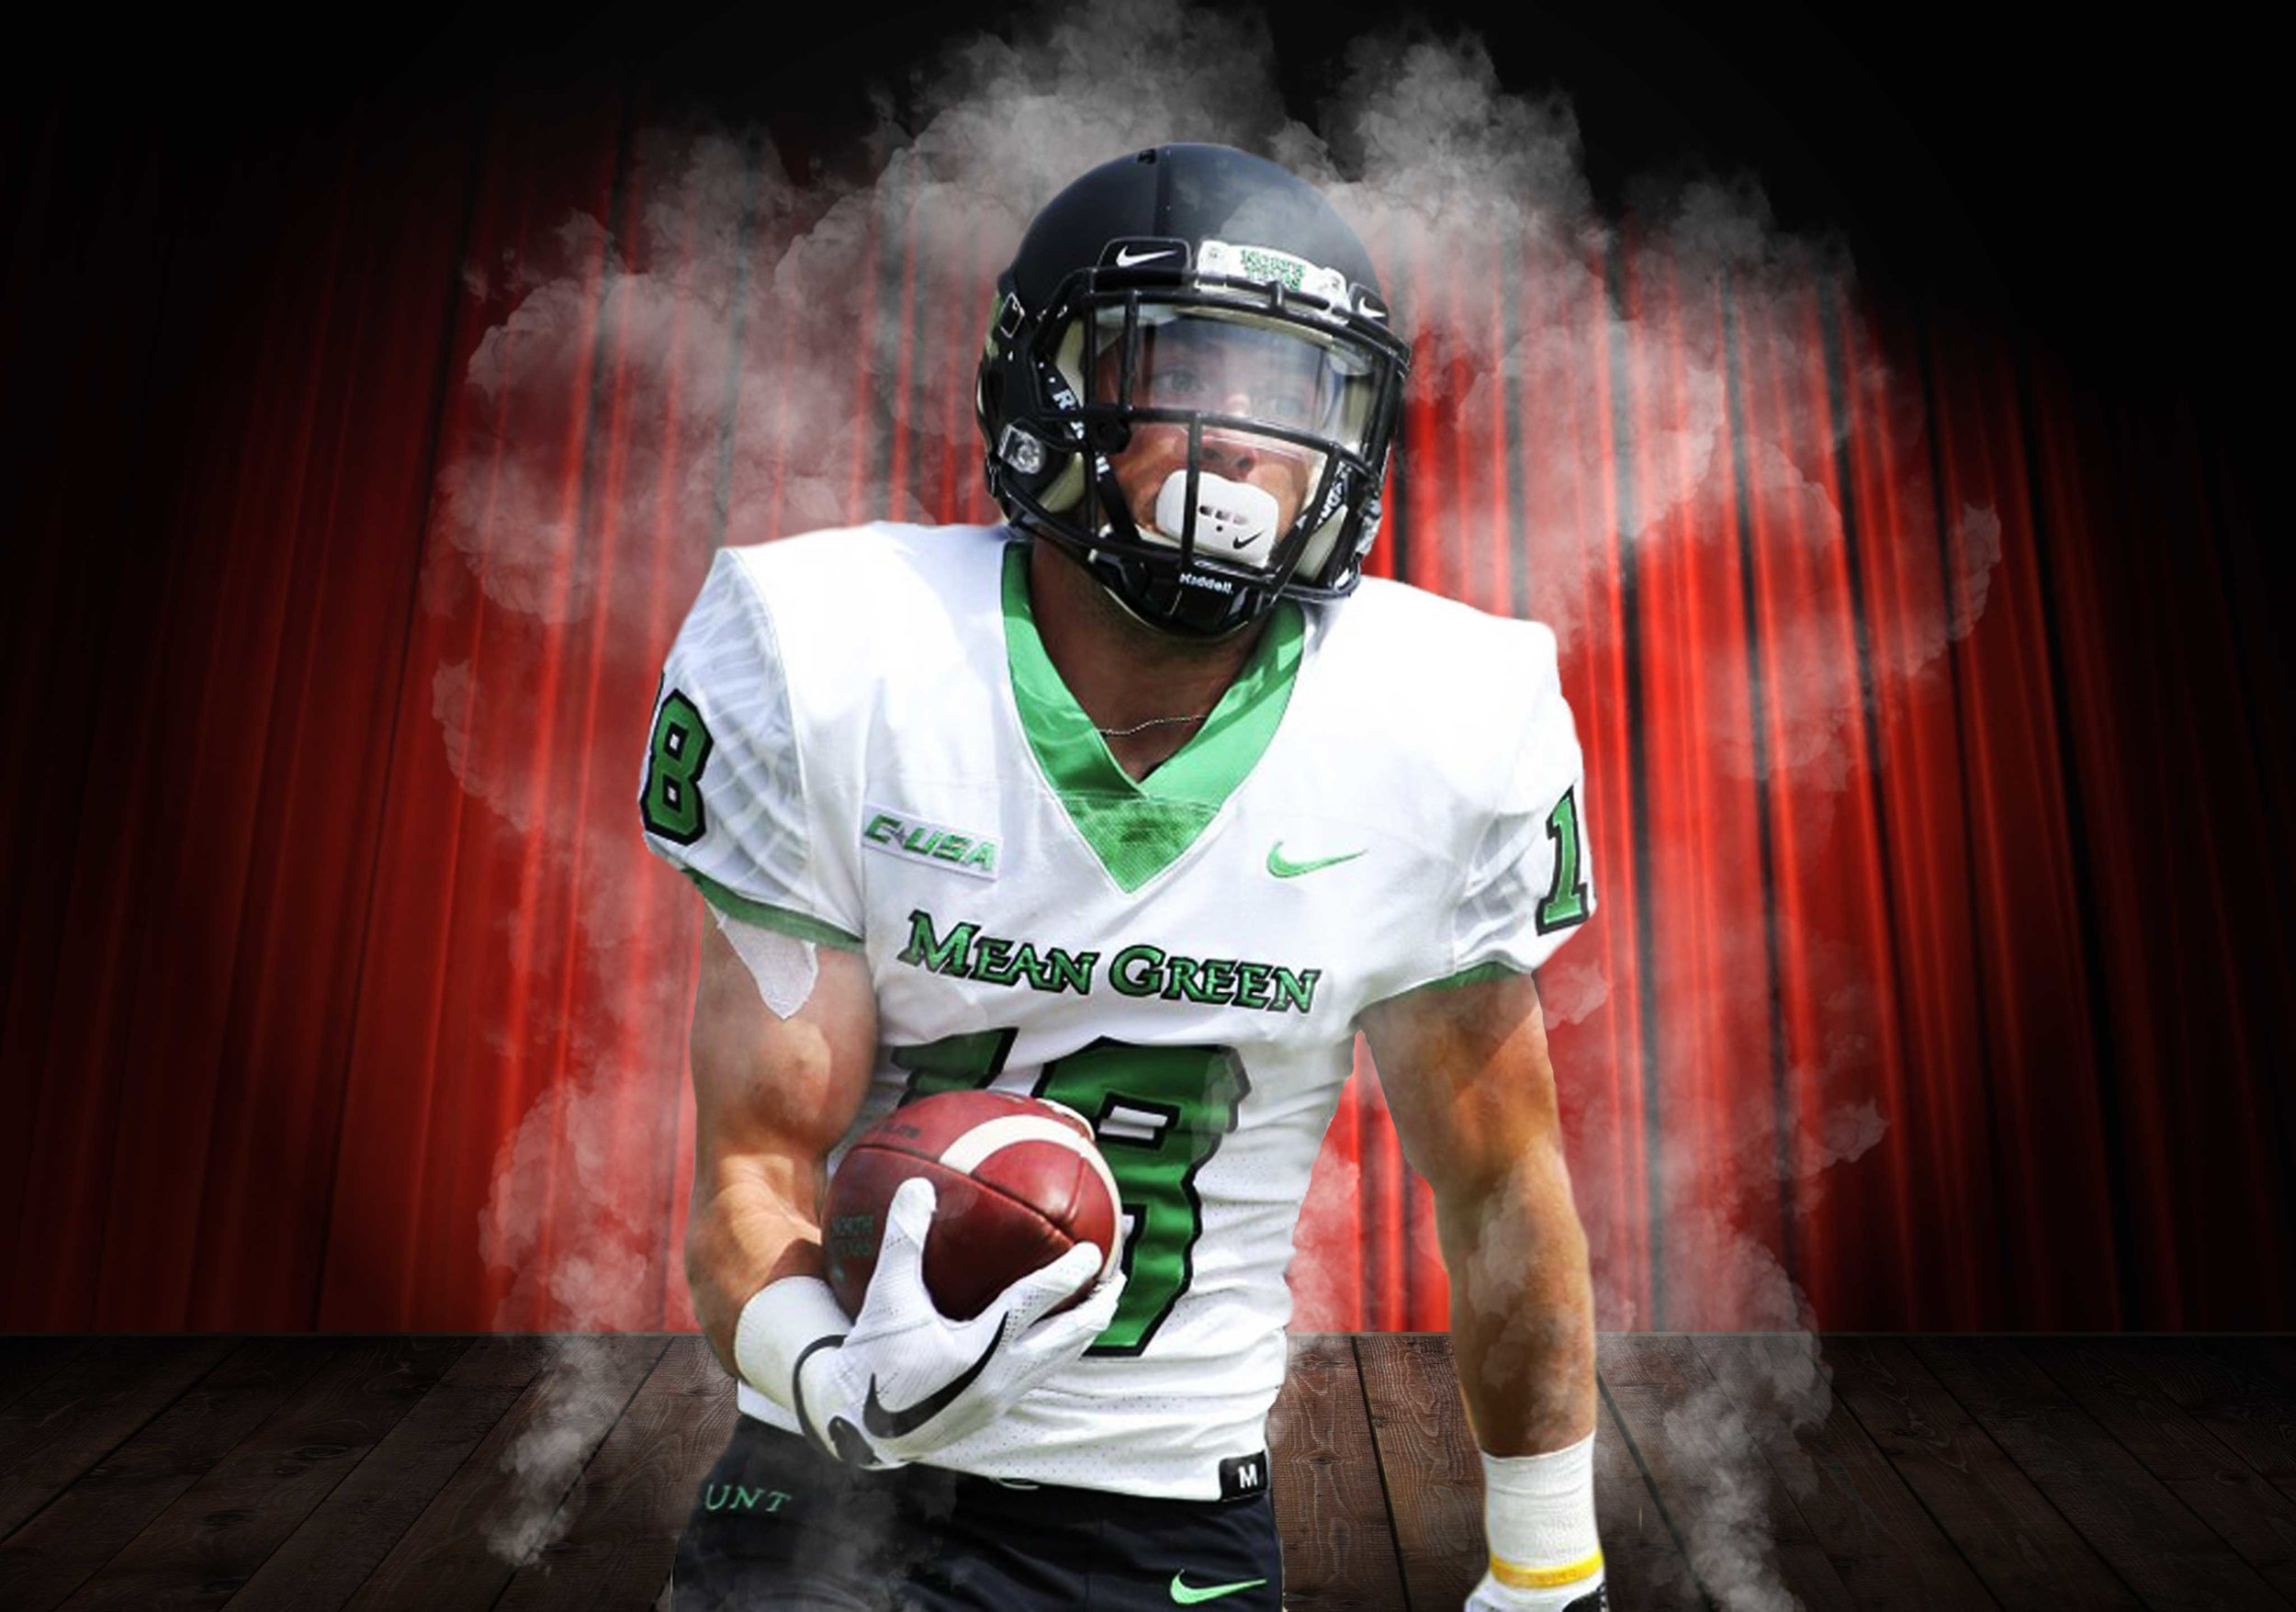 University of North Texas player, Keegan Brewer, was able to Think Like A Magician™ on the field and score a touchdown as a result.